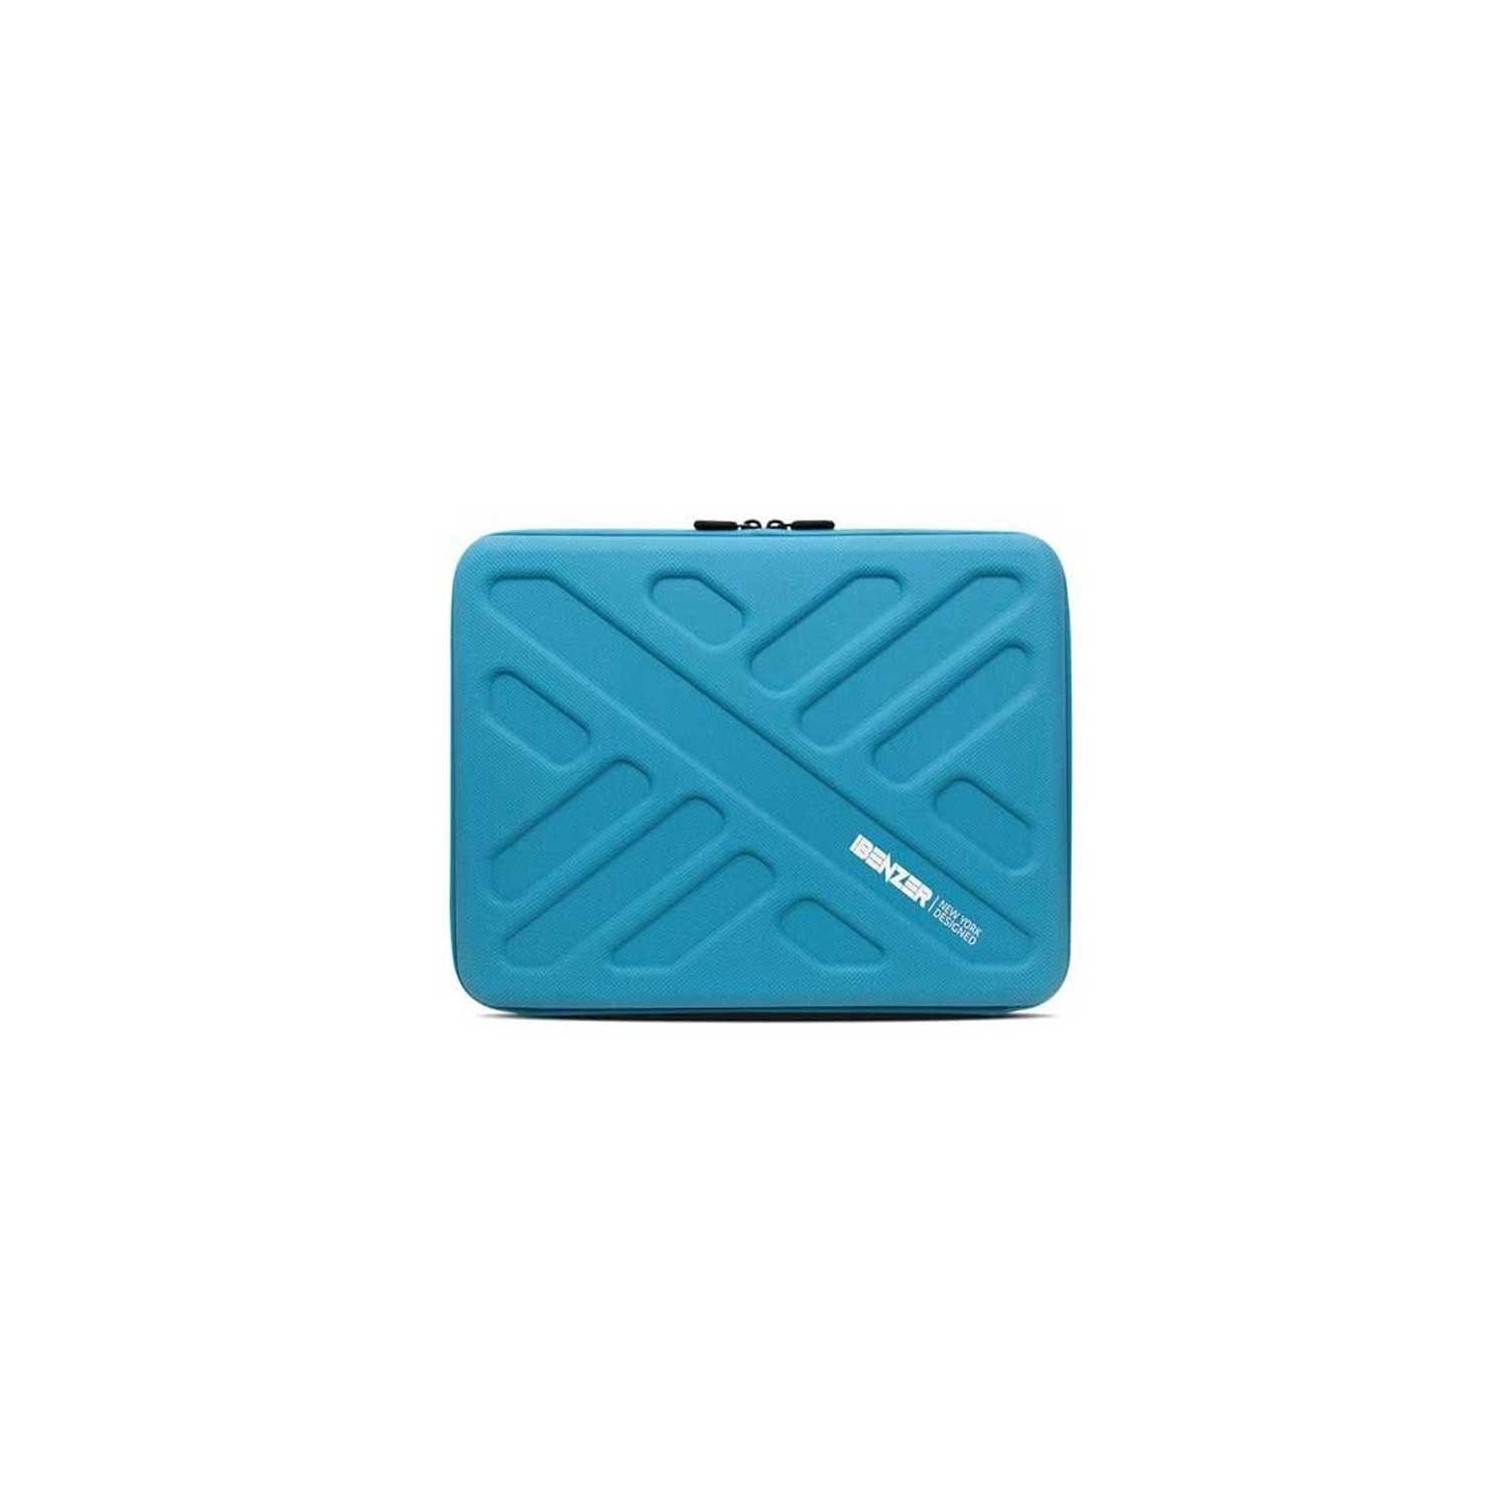 "Case - IBENZER BUMPTECT CASE FOR 13"" Laptops BLUE"